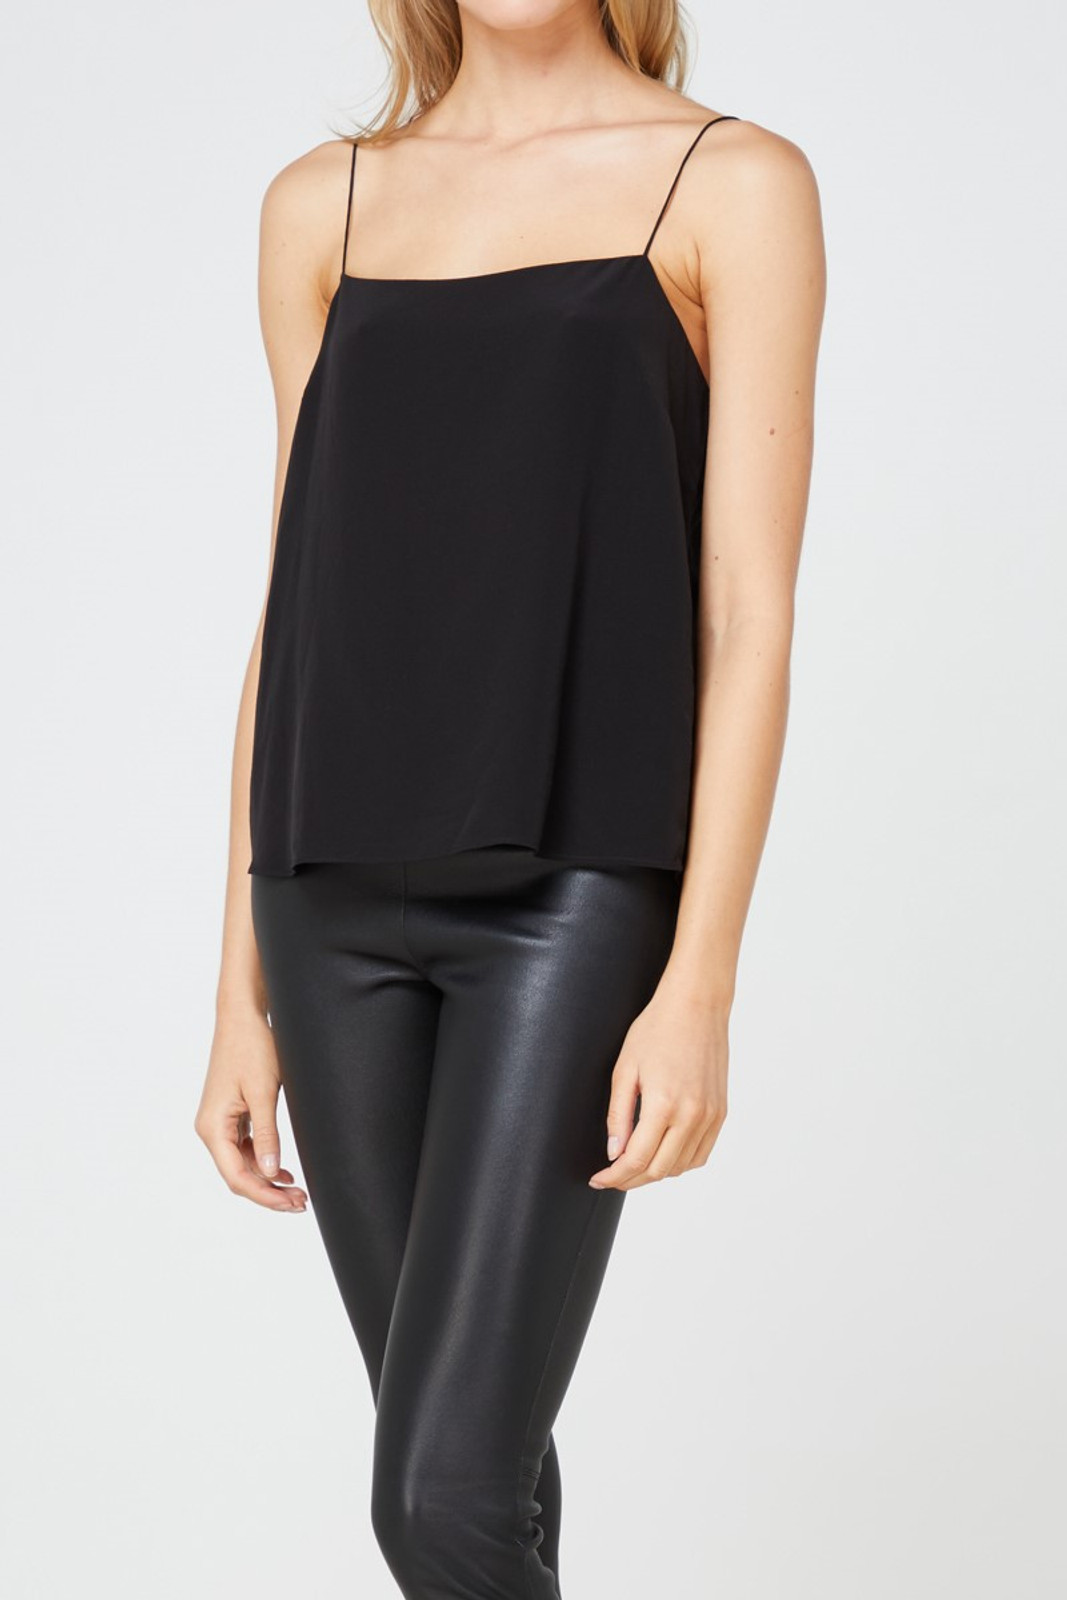 Elka Collective Lucca Cami Black  1